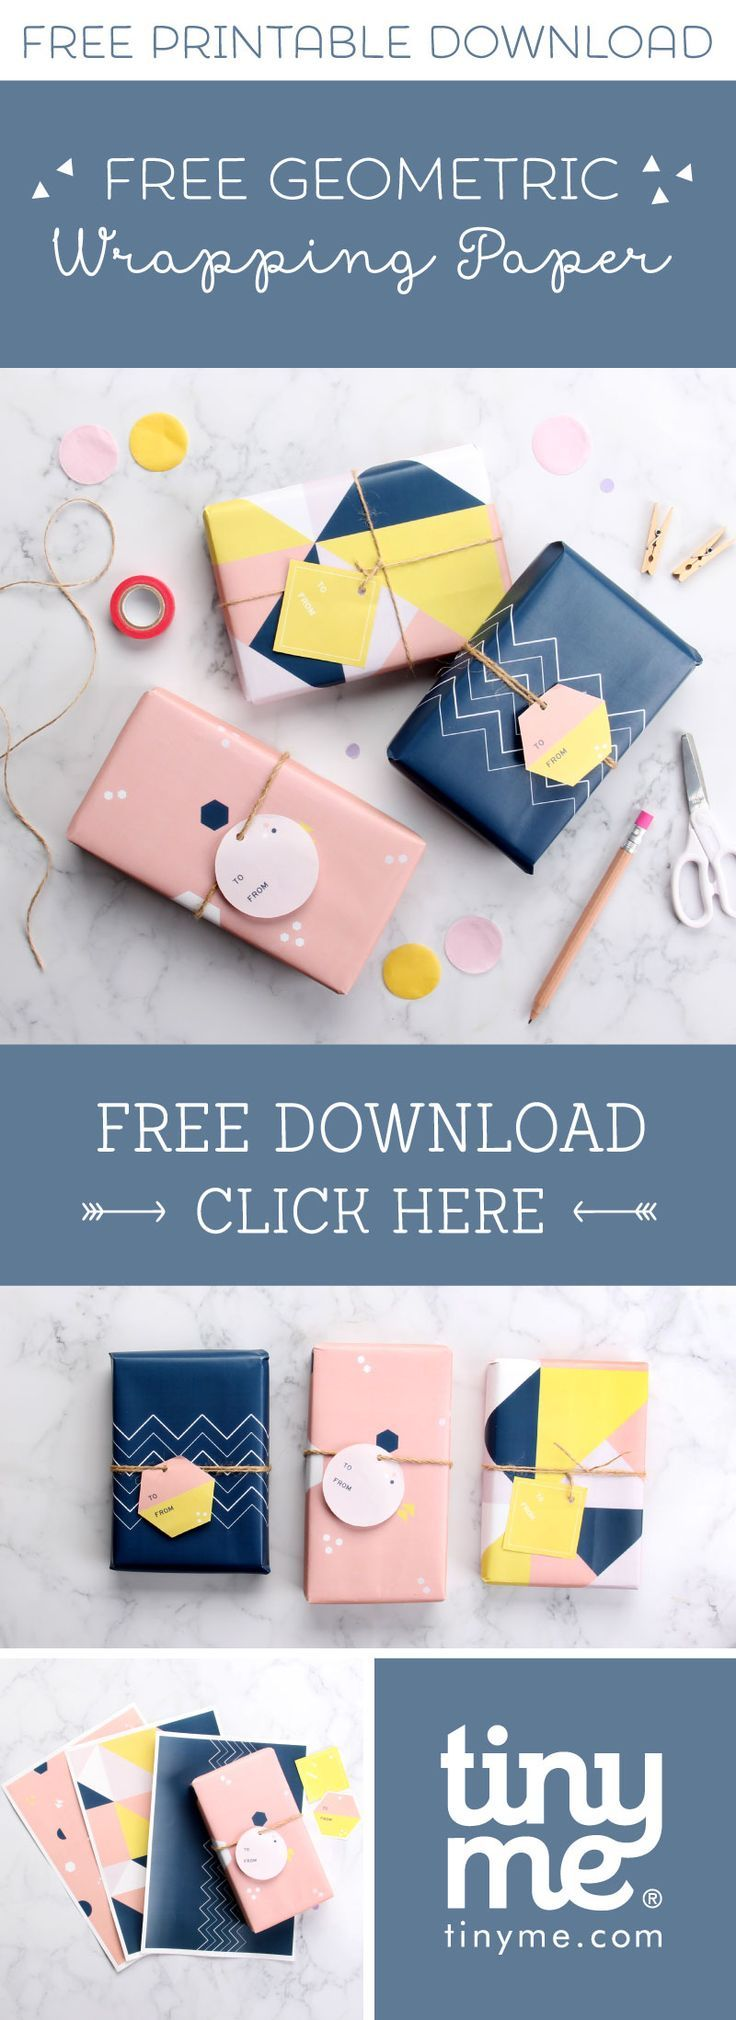 Get your wrap on with our Free Geometric Printable Wrapping Paper | Tinyme Blog